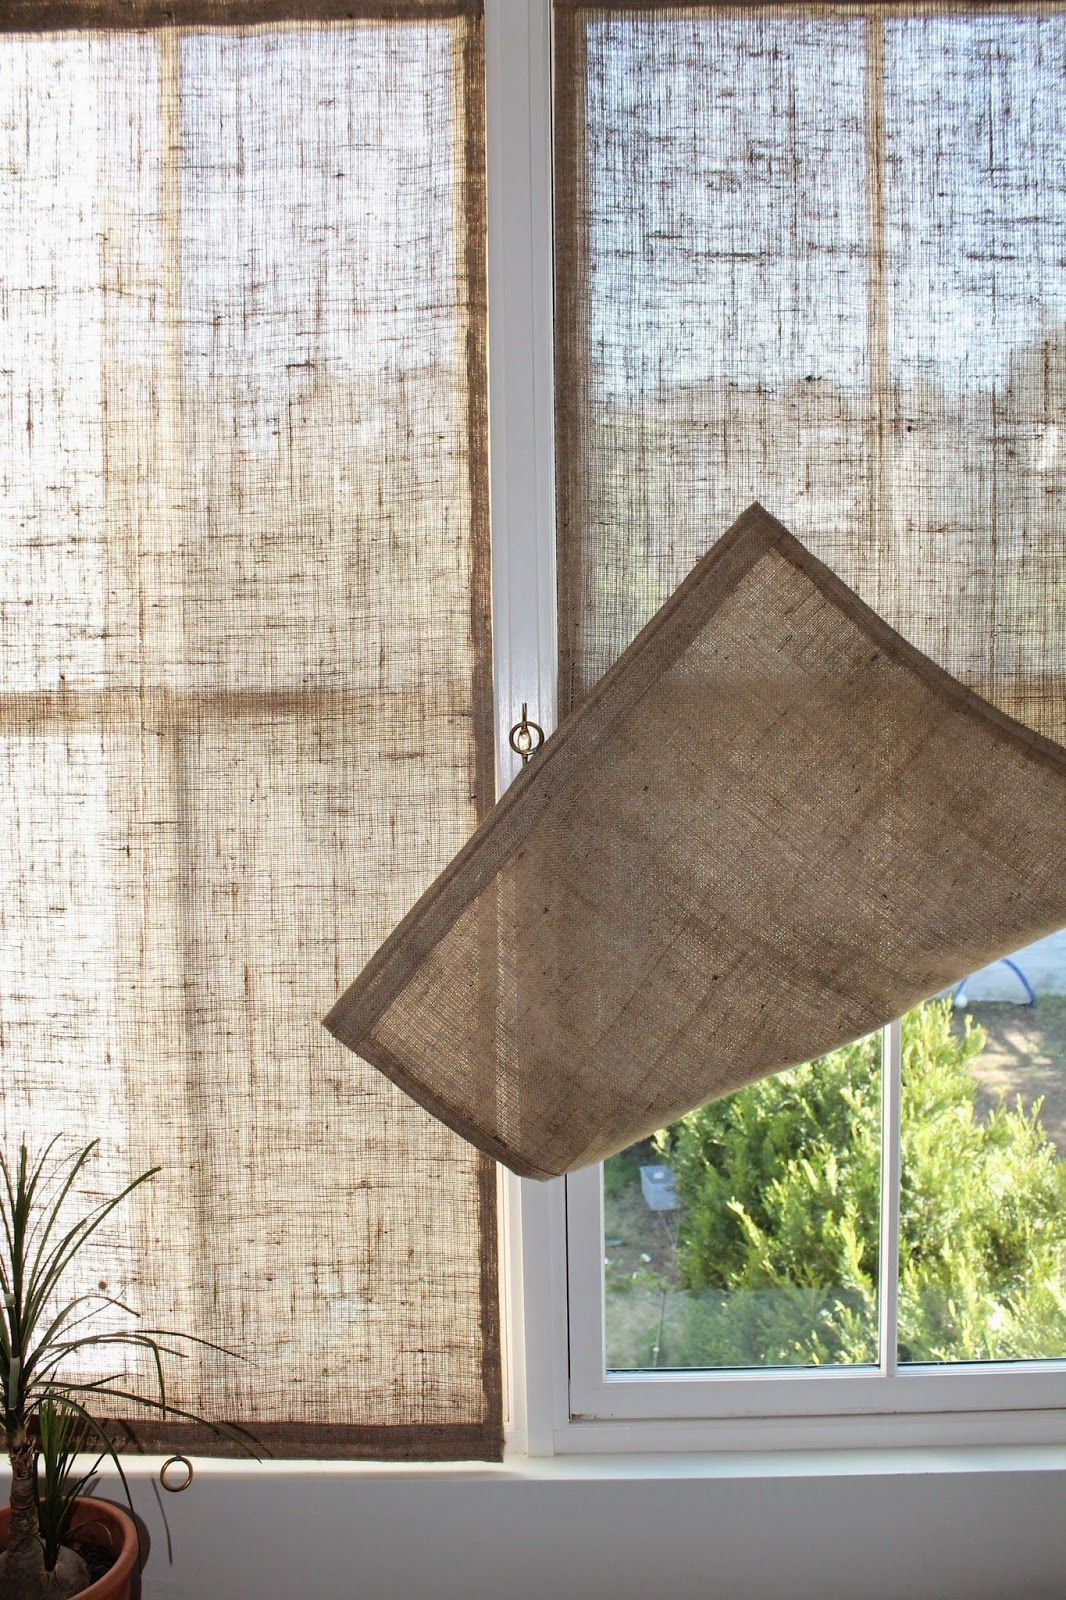 The Shingled House Burlap Window Shades For Our Home Interior